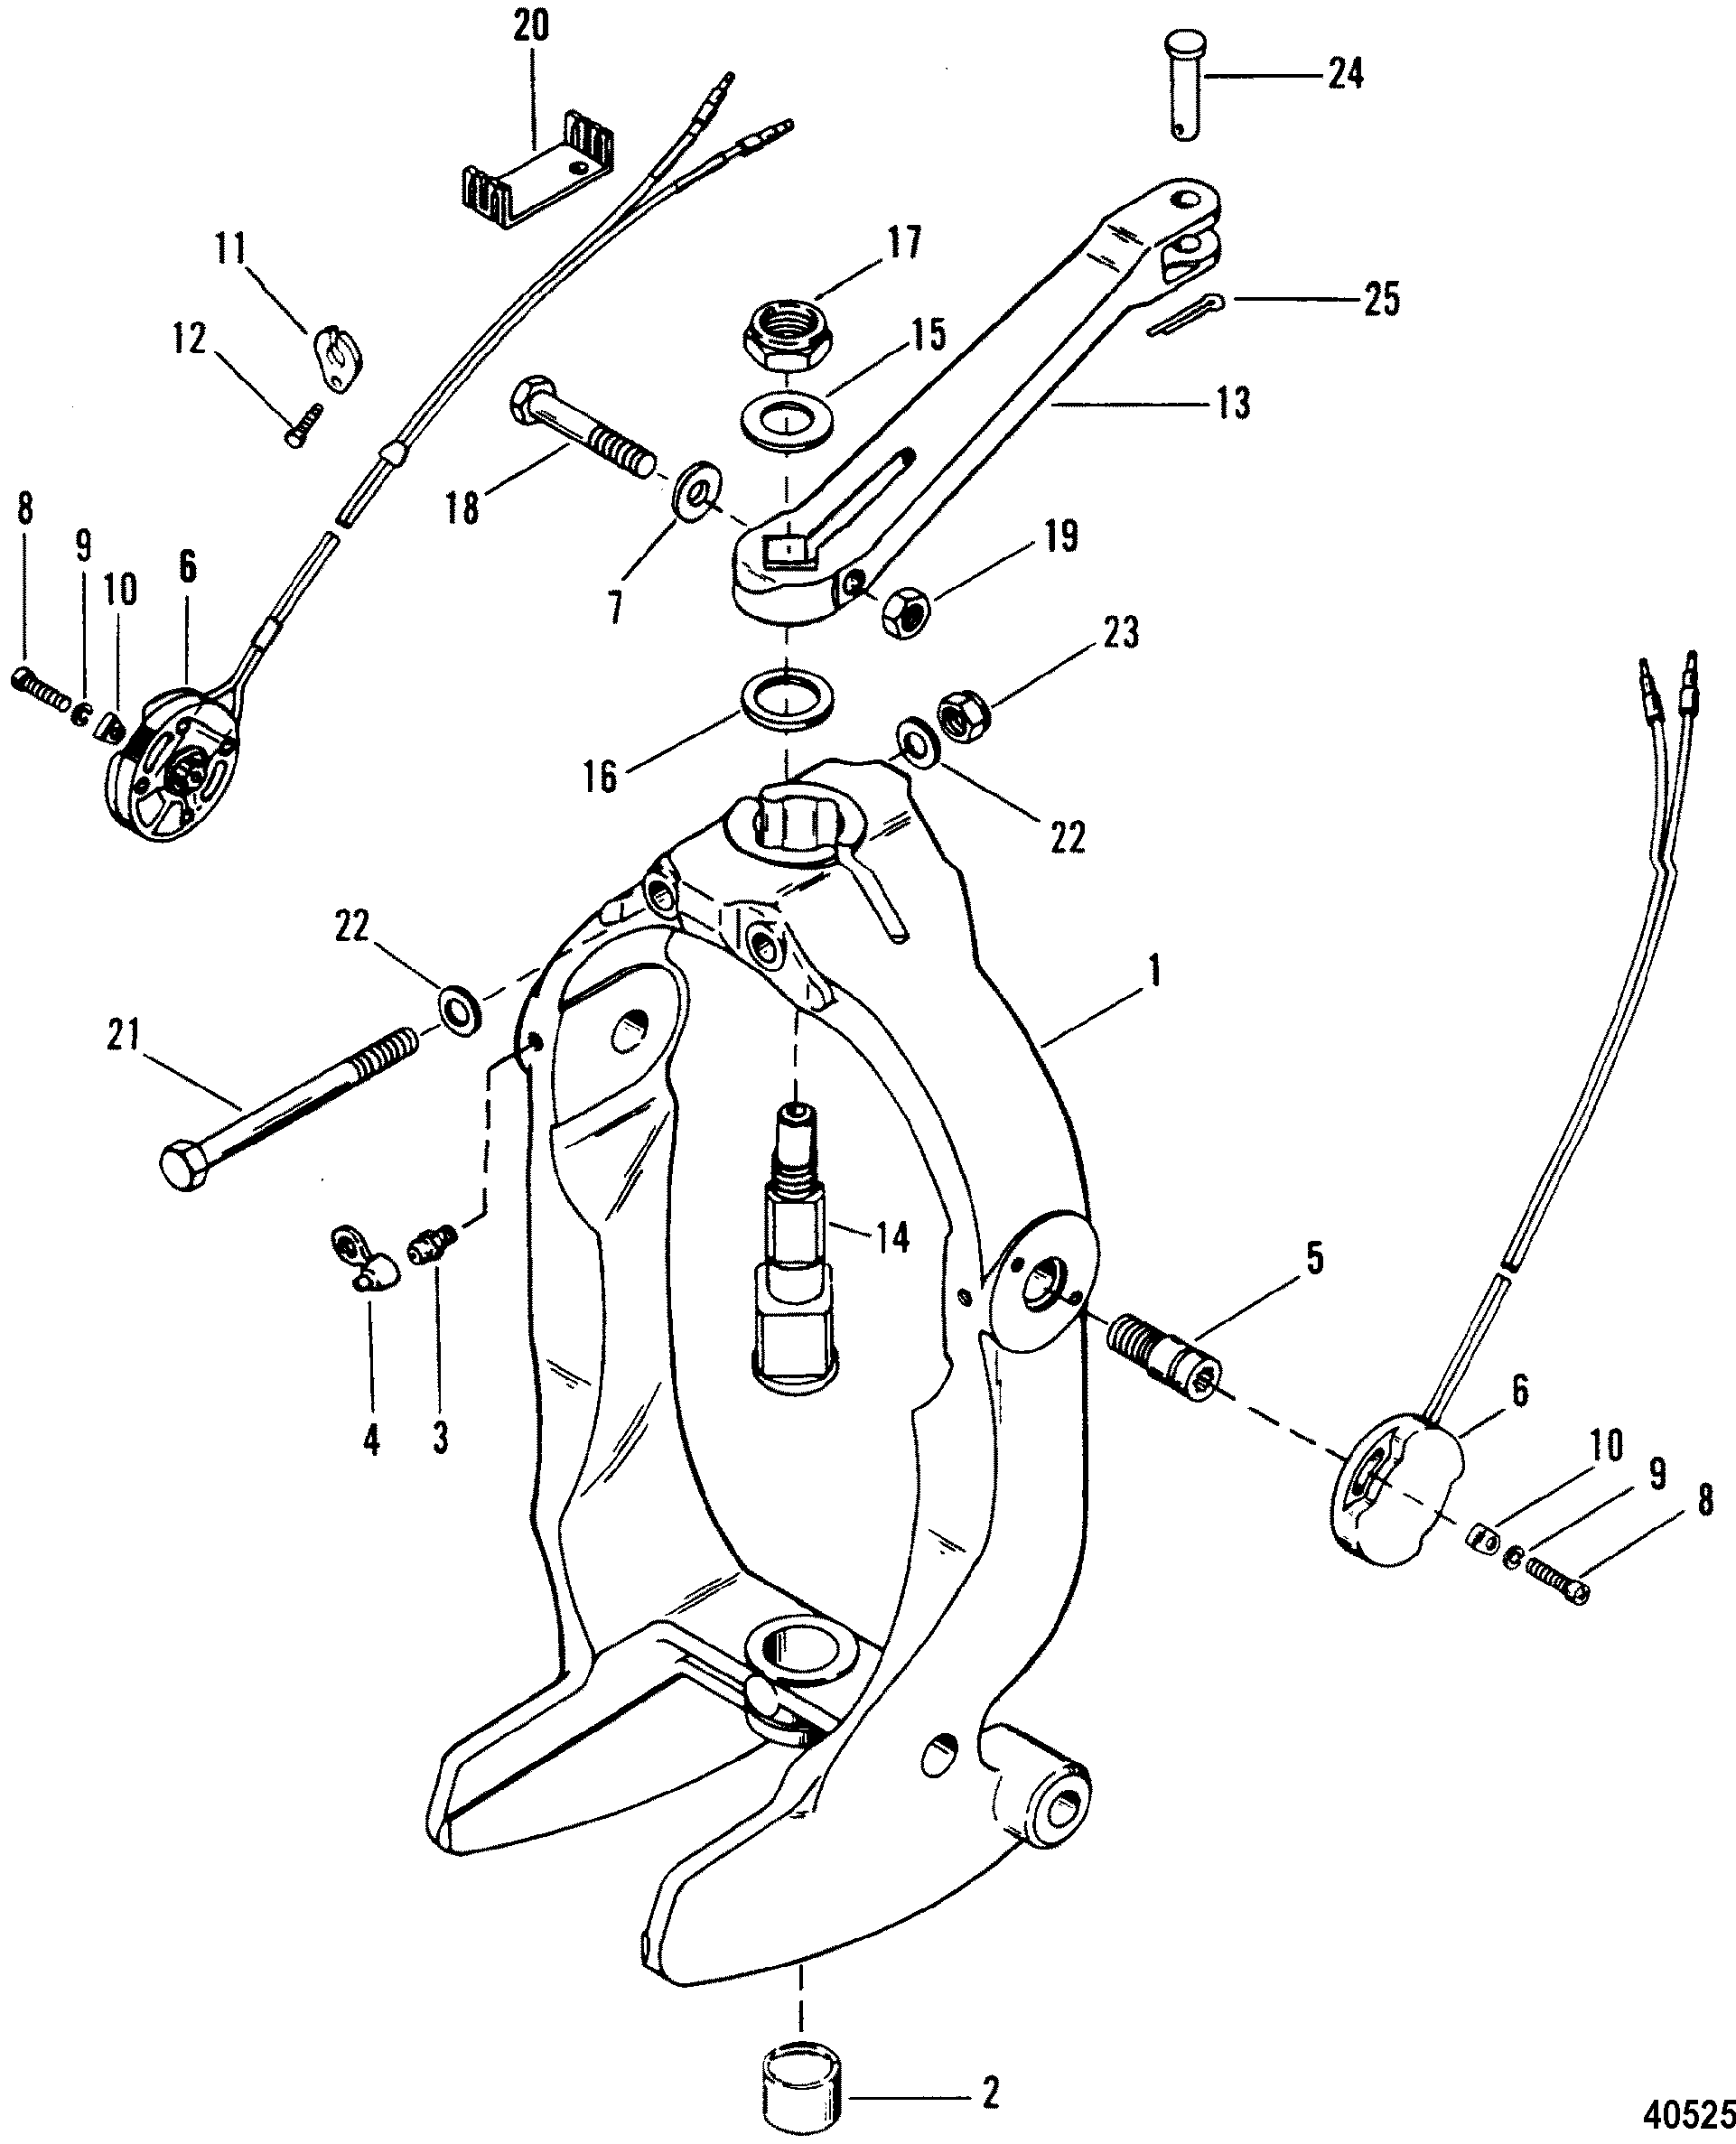 alpha one trim wiring diagram french braid gimbal ring and steering lever for mercruiser